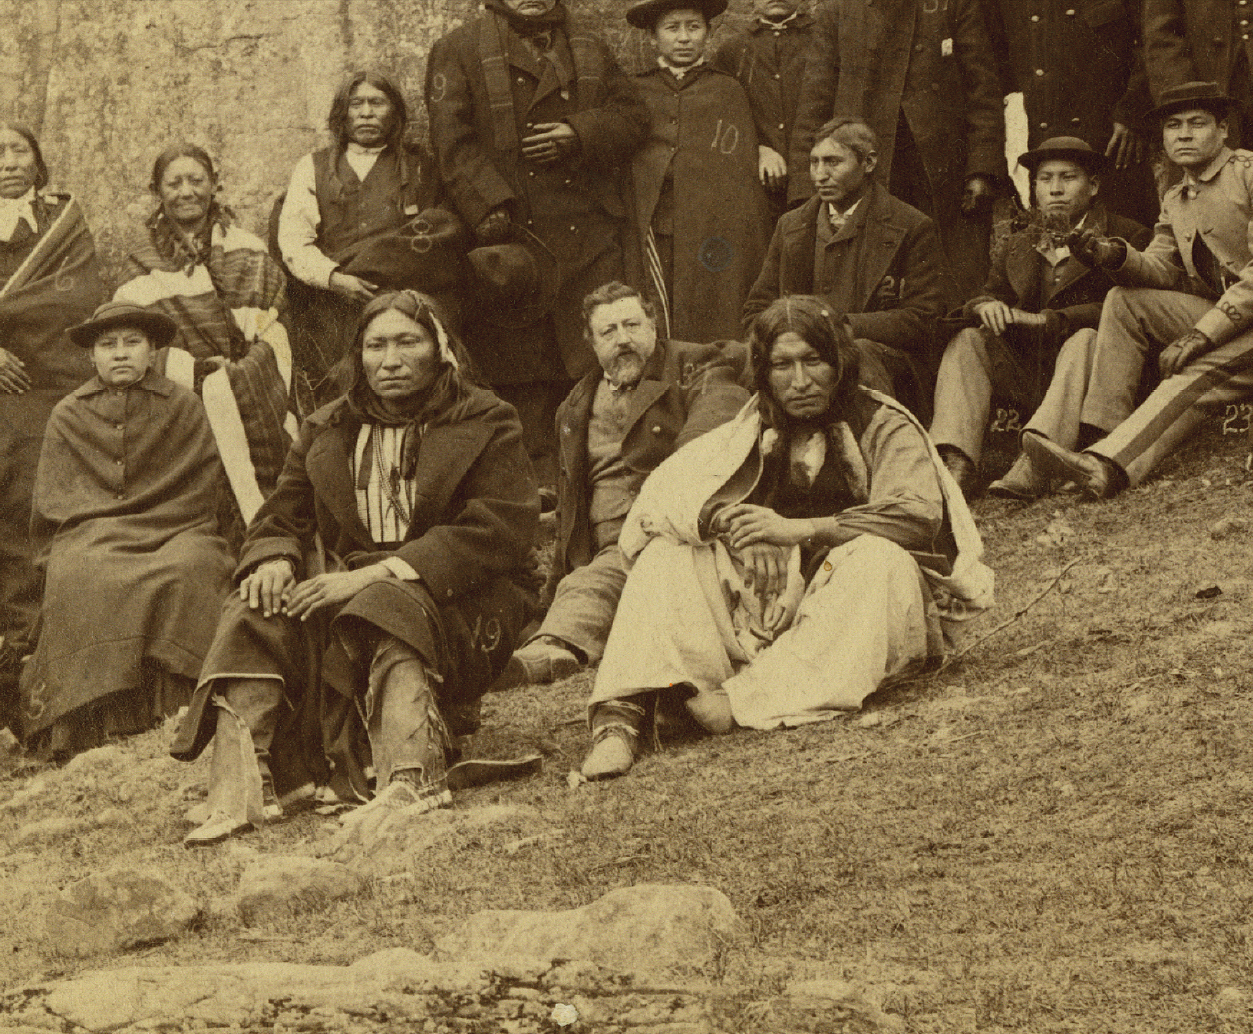 americanizing the white man indian affairs Start studying english 11 how would the meaning of an indian's view of indian affairs i will tell you in my way how the indian sees things the white man.